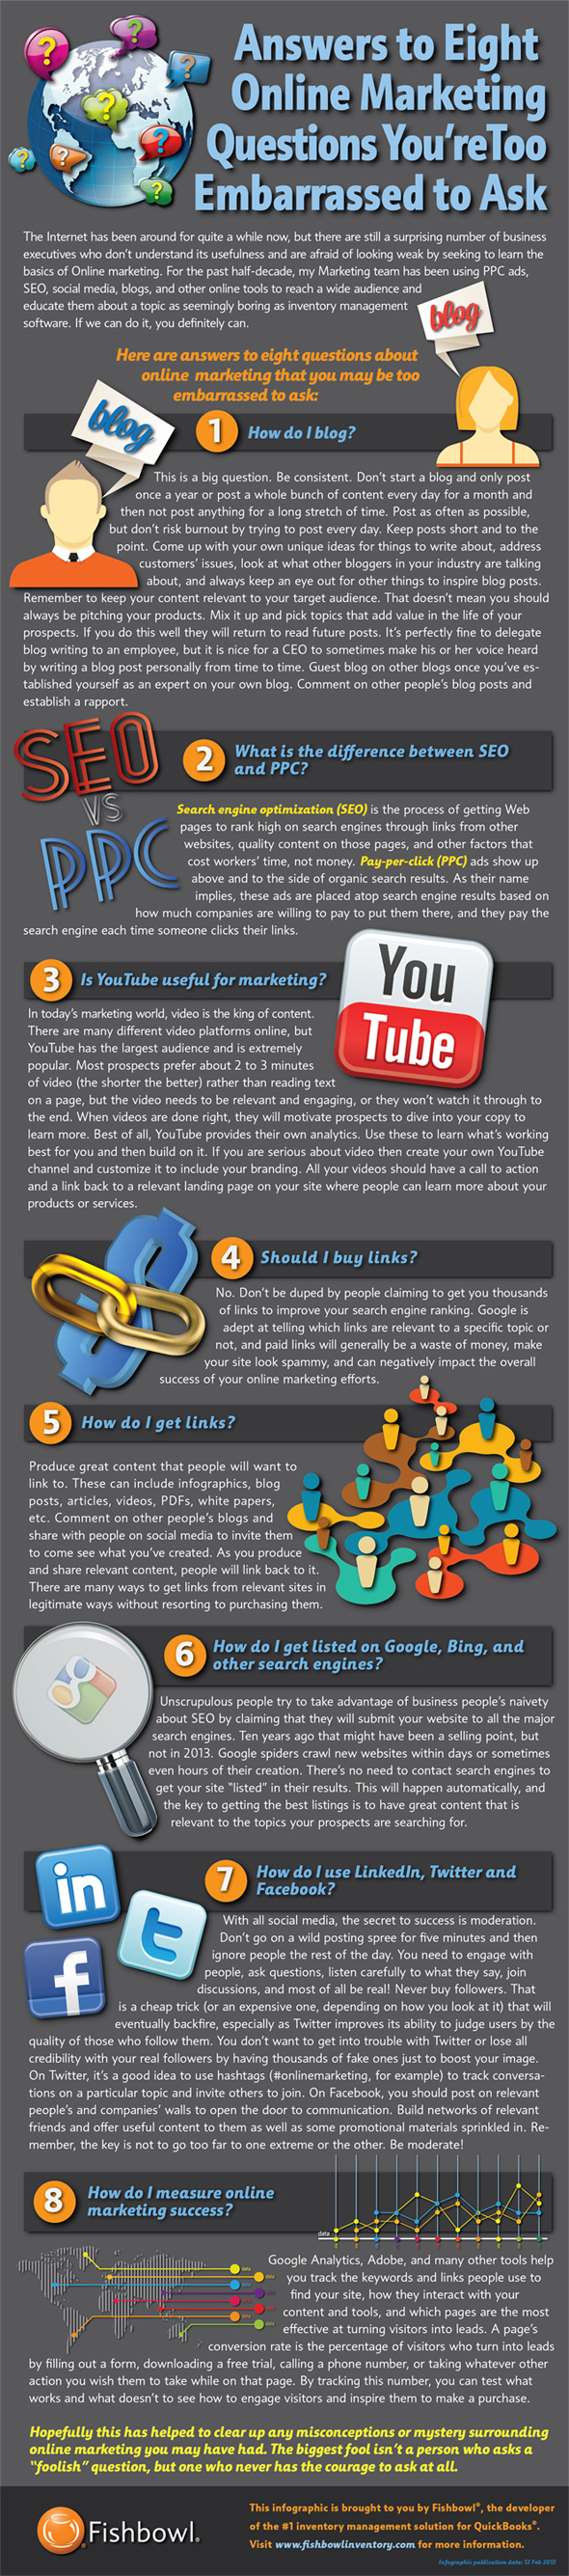 Blogging, SEO, PPC, social media, videos, link building, and many other things go into online marketing. This infographic answers your questions about what these things are and how best to do them.